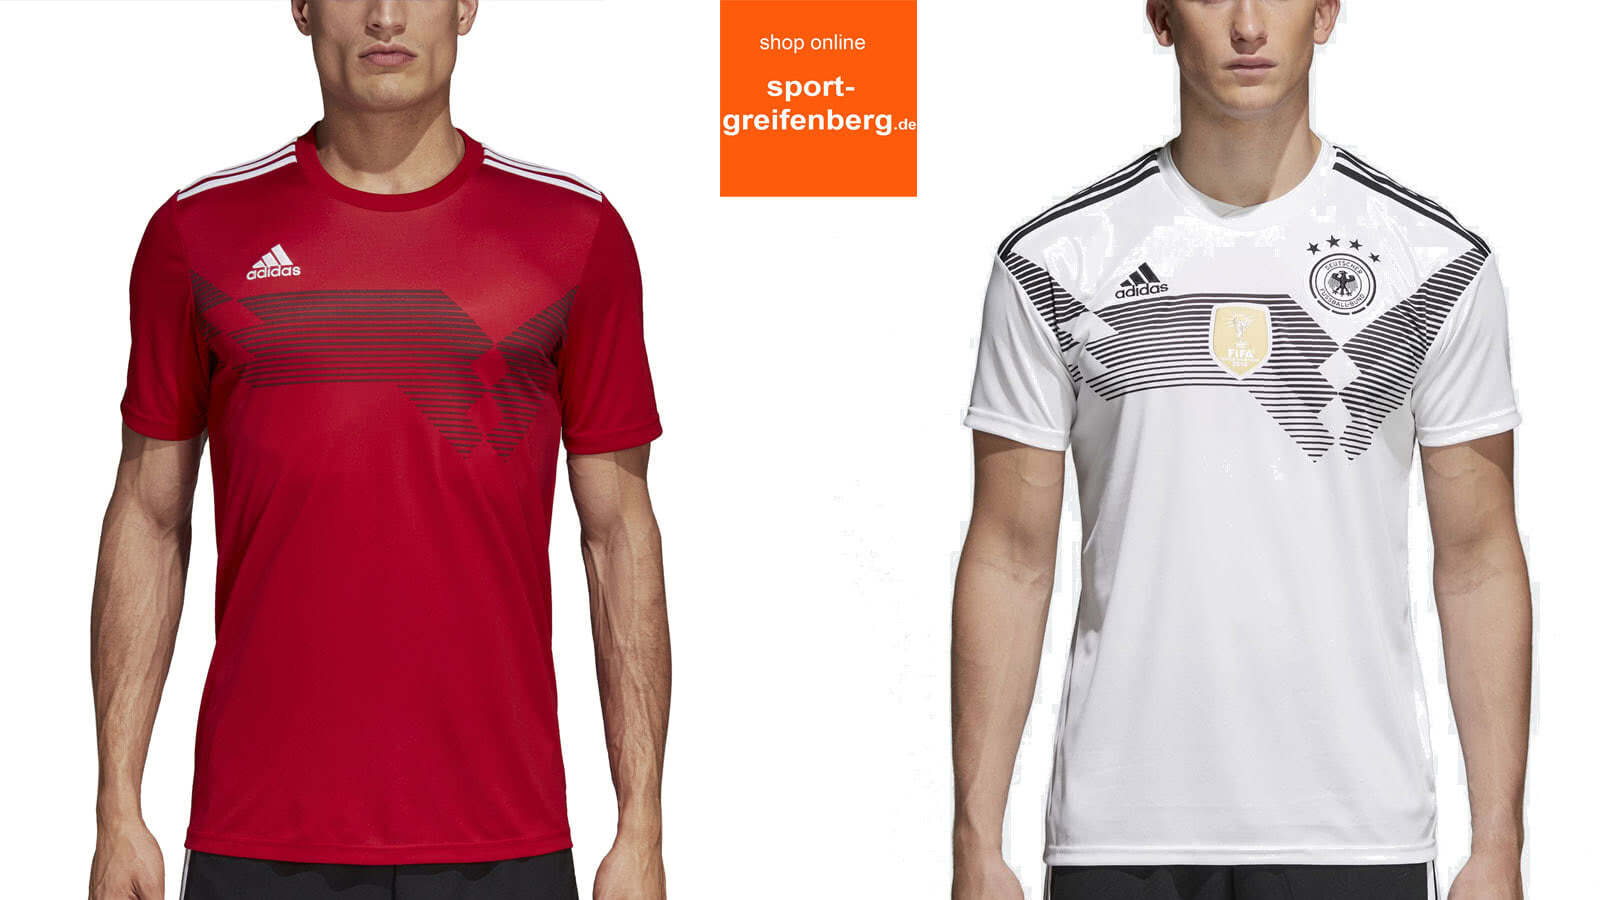 De 19 Étranger Maillots Adidas Club Football Campeon 2YHIED9W